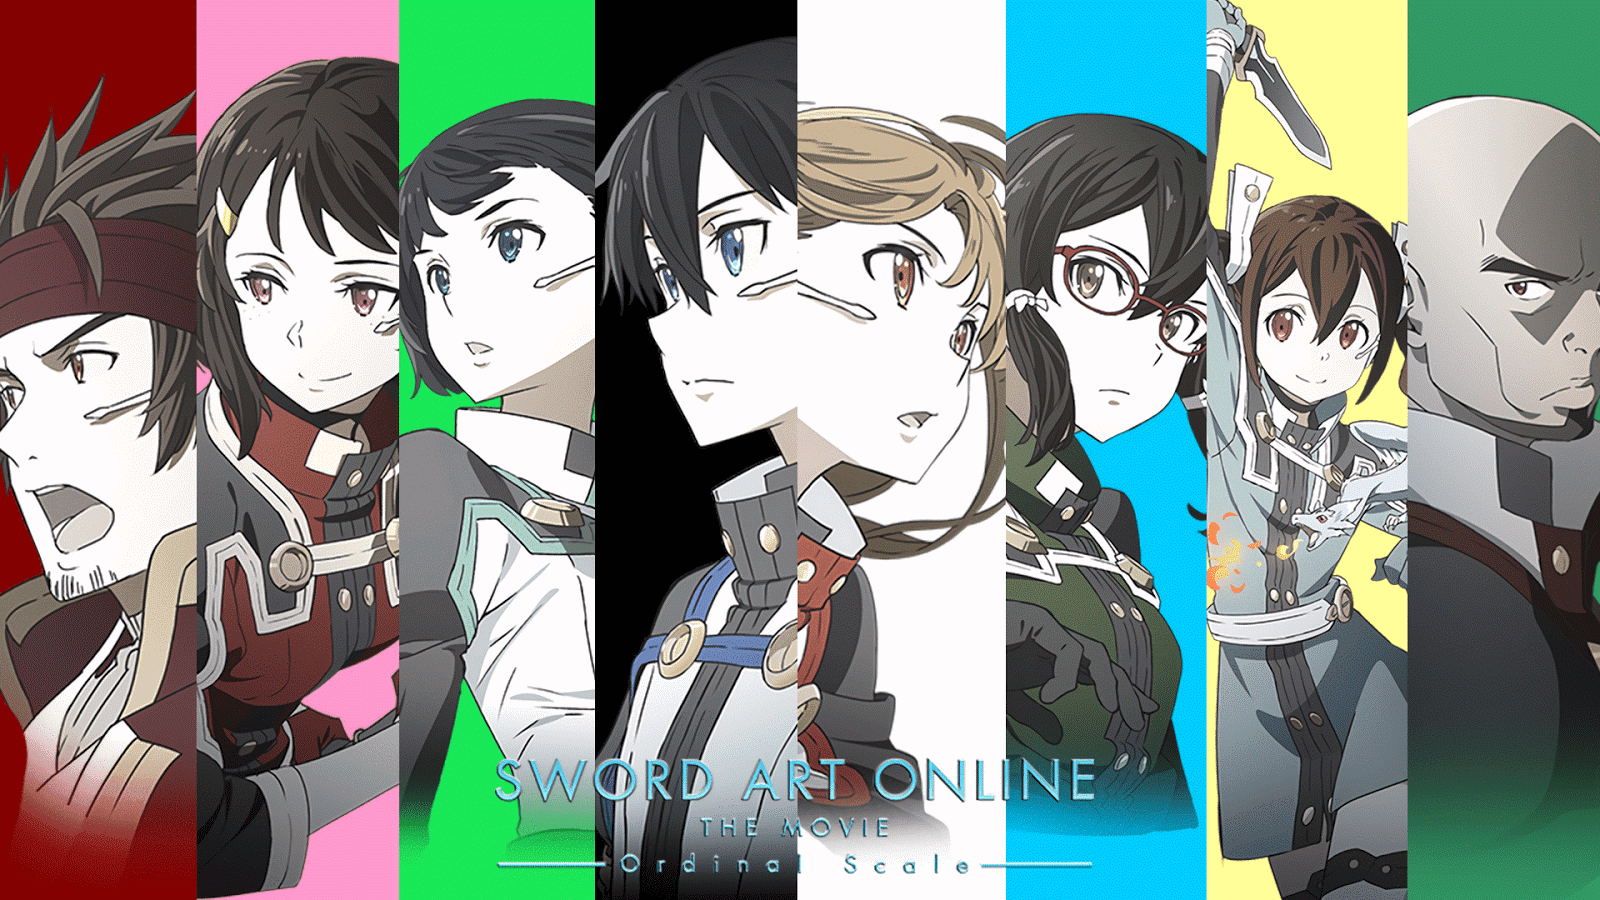 AowVN%2B%25289%2529 min - [ Hình Nền ] Anime Sword Art Online The Movie : Ordinal Scale Cực Đẹp | Wallpaper